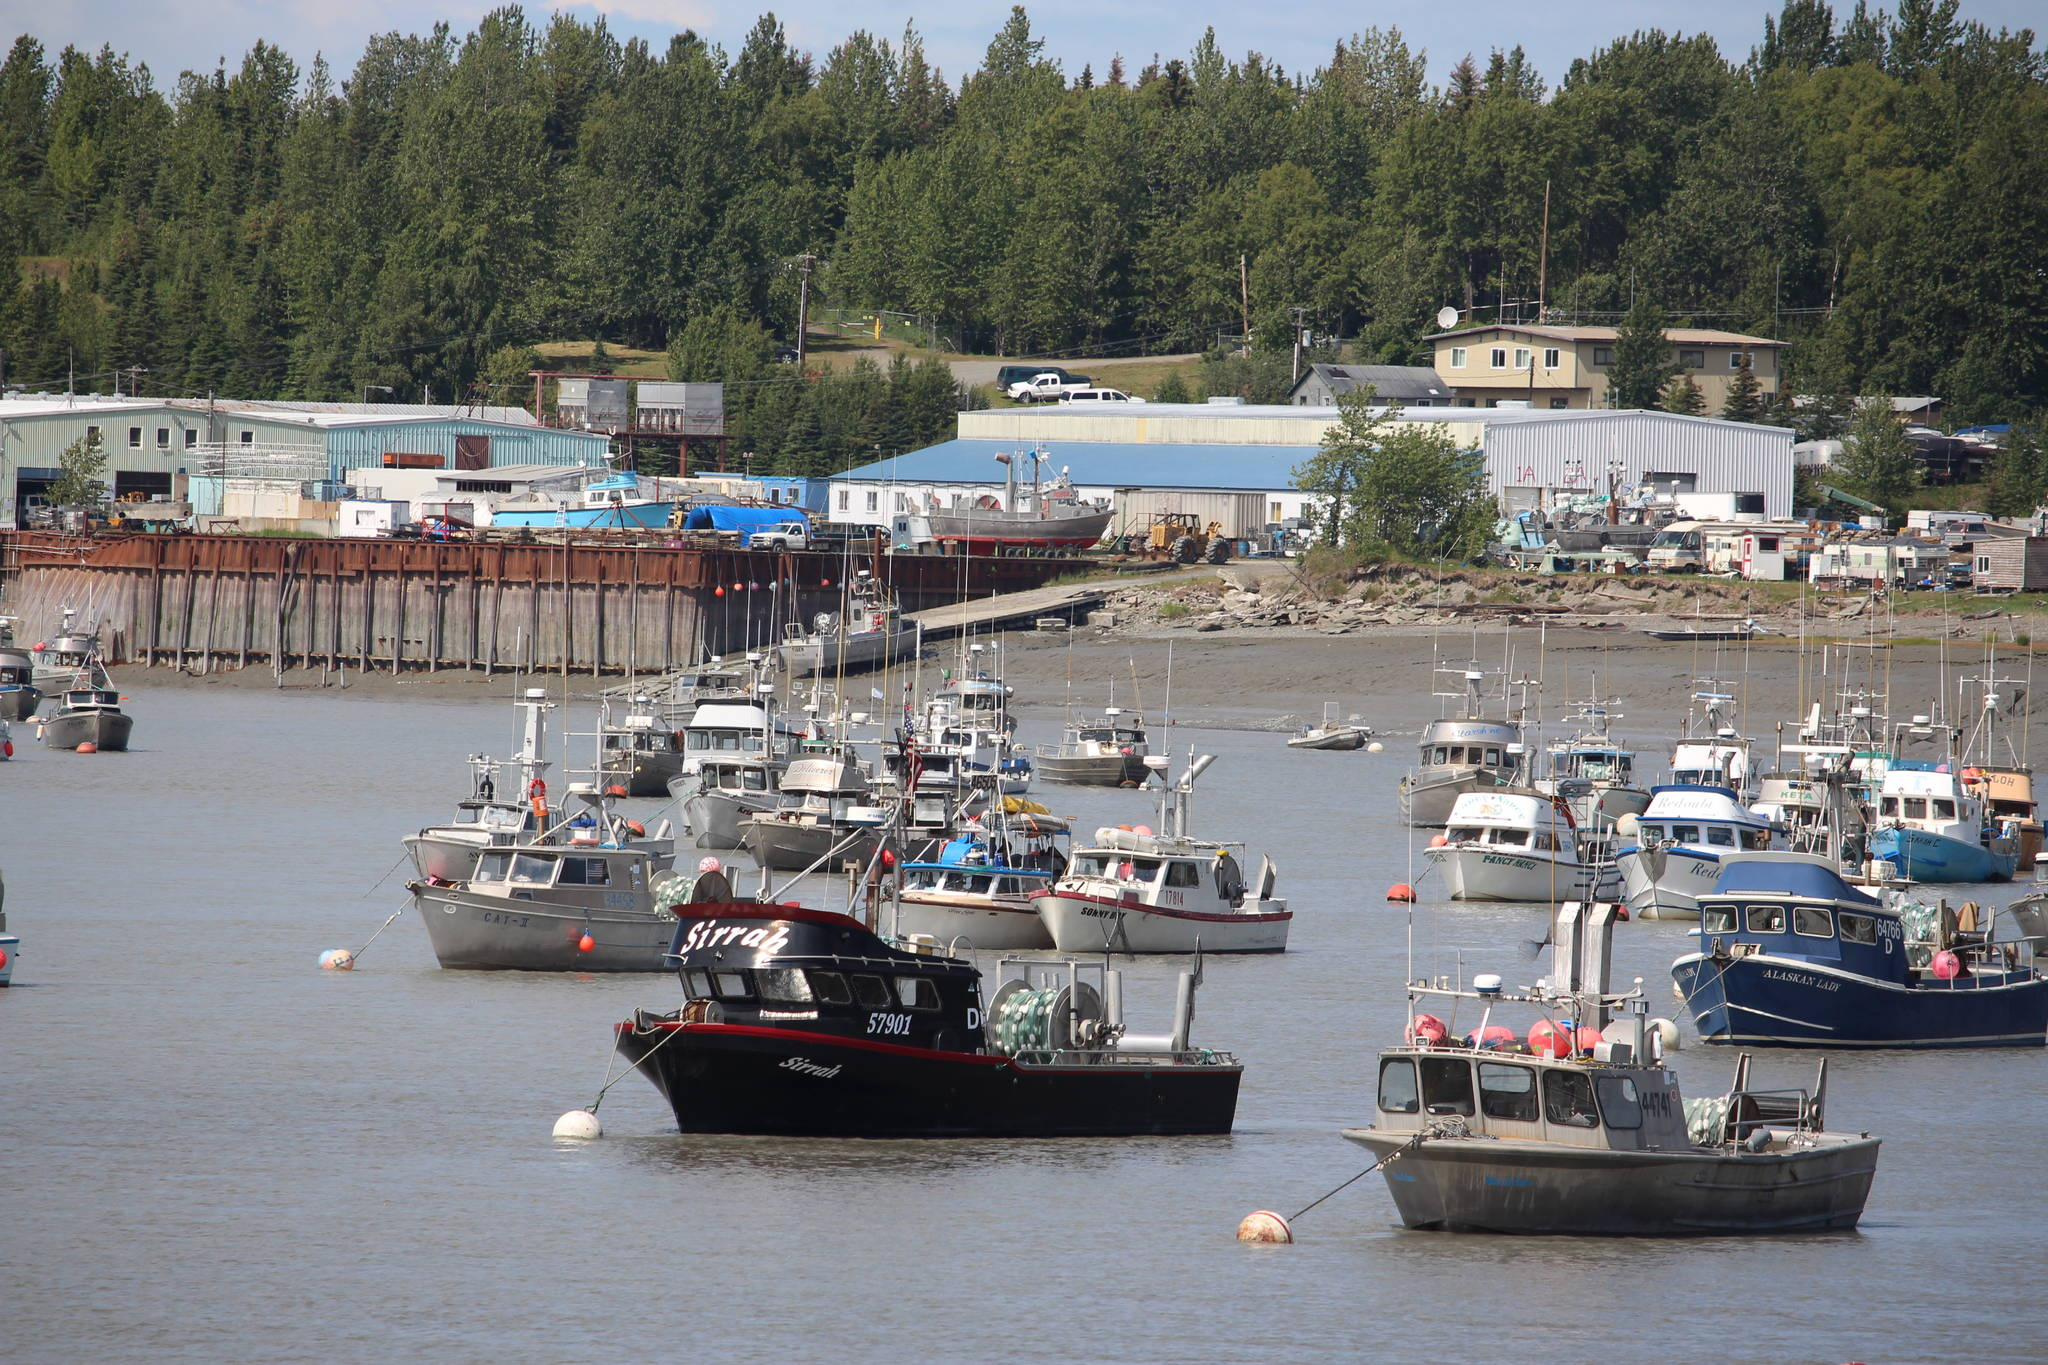 Commercial fishing vessels are moored at the mouth of the Kenai River on July 10, 2020. (Photo by Brian Mazurek/Peninsula Clarion)